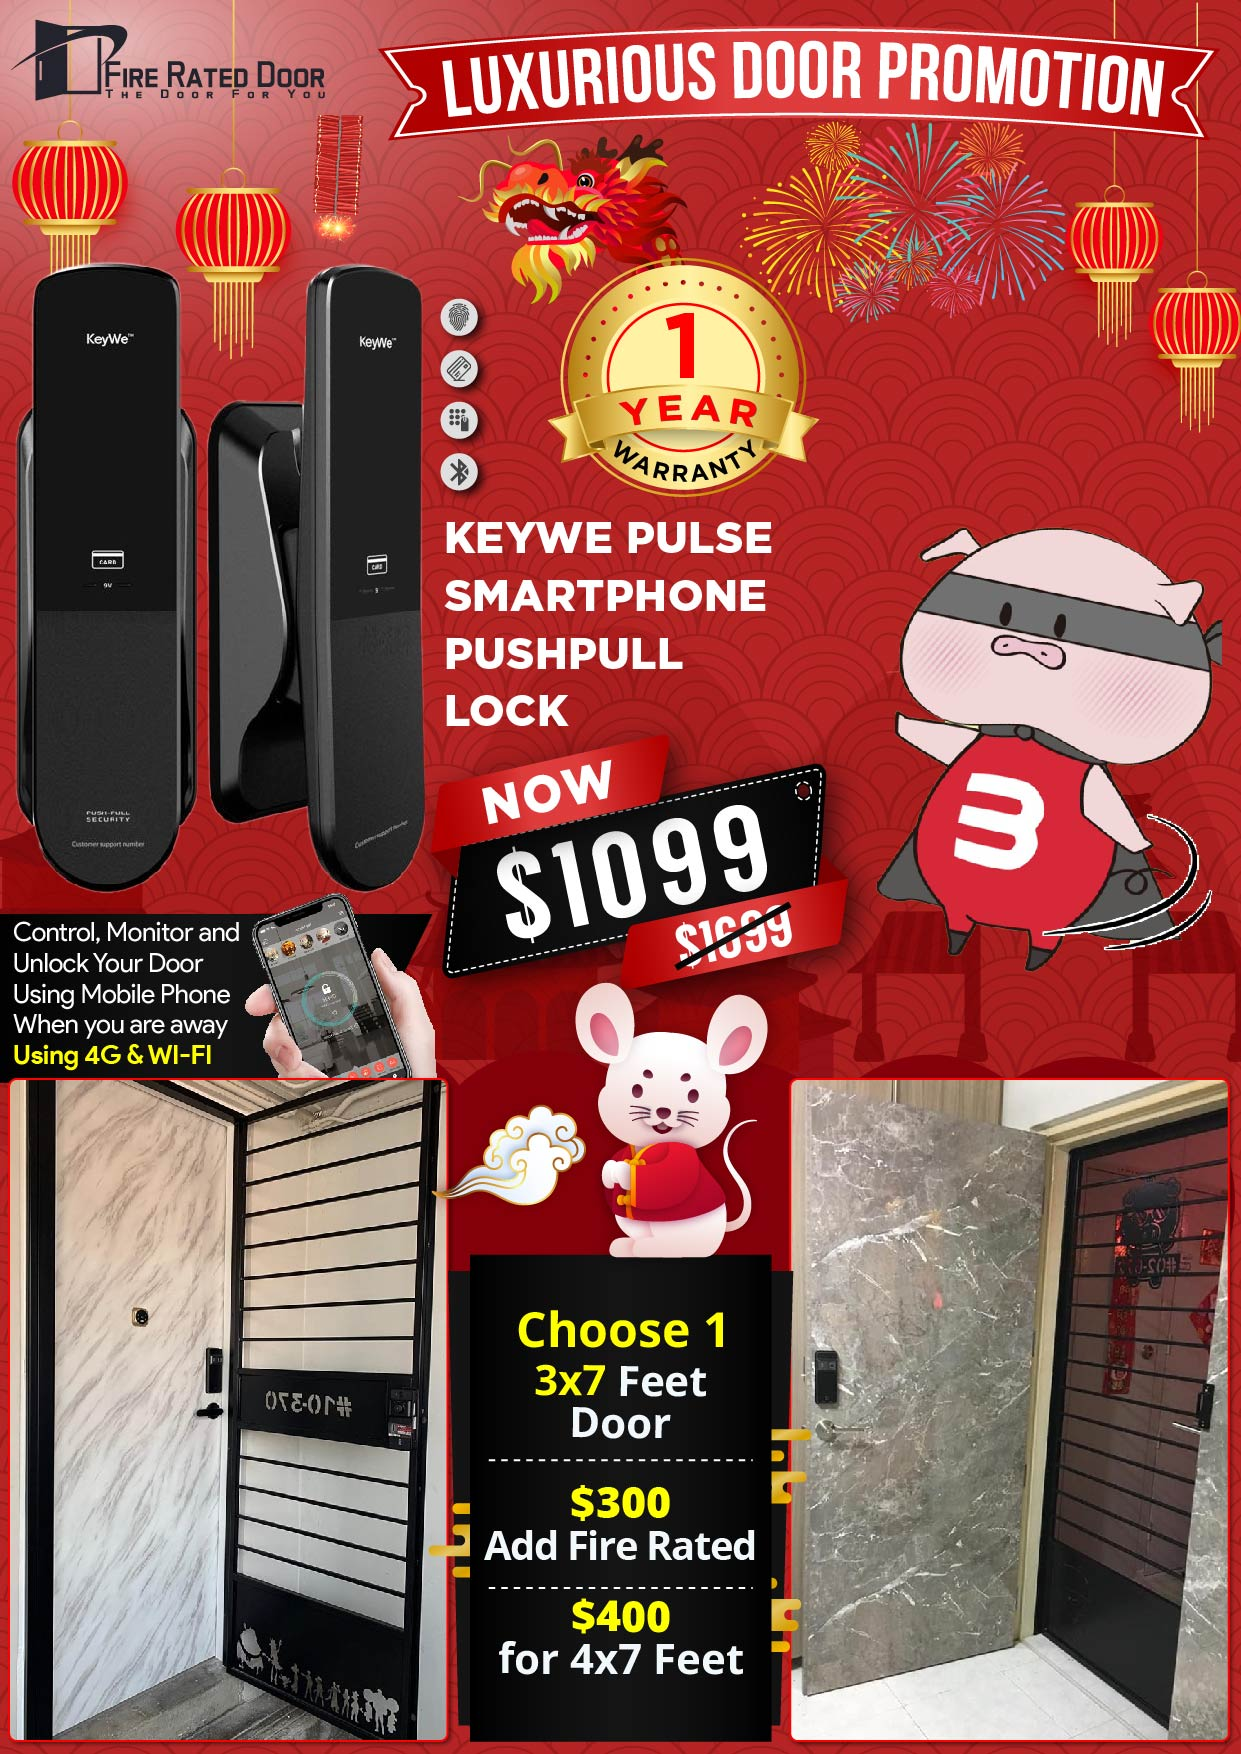 KEYWE Pulse Push Pull Digital Lock with Door and Gate